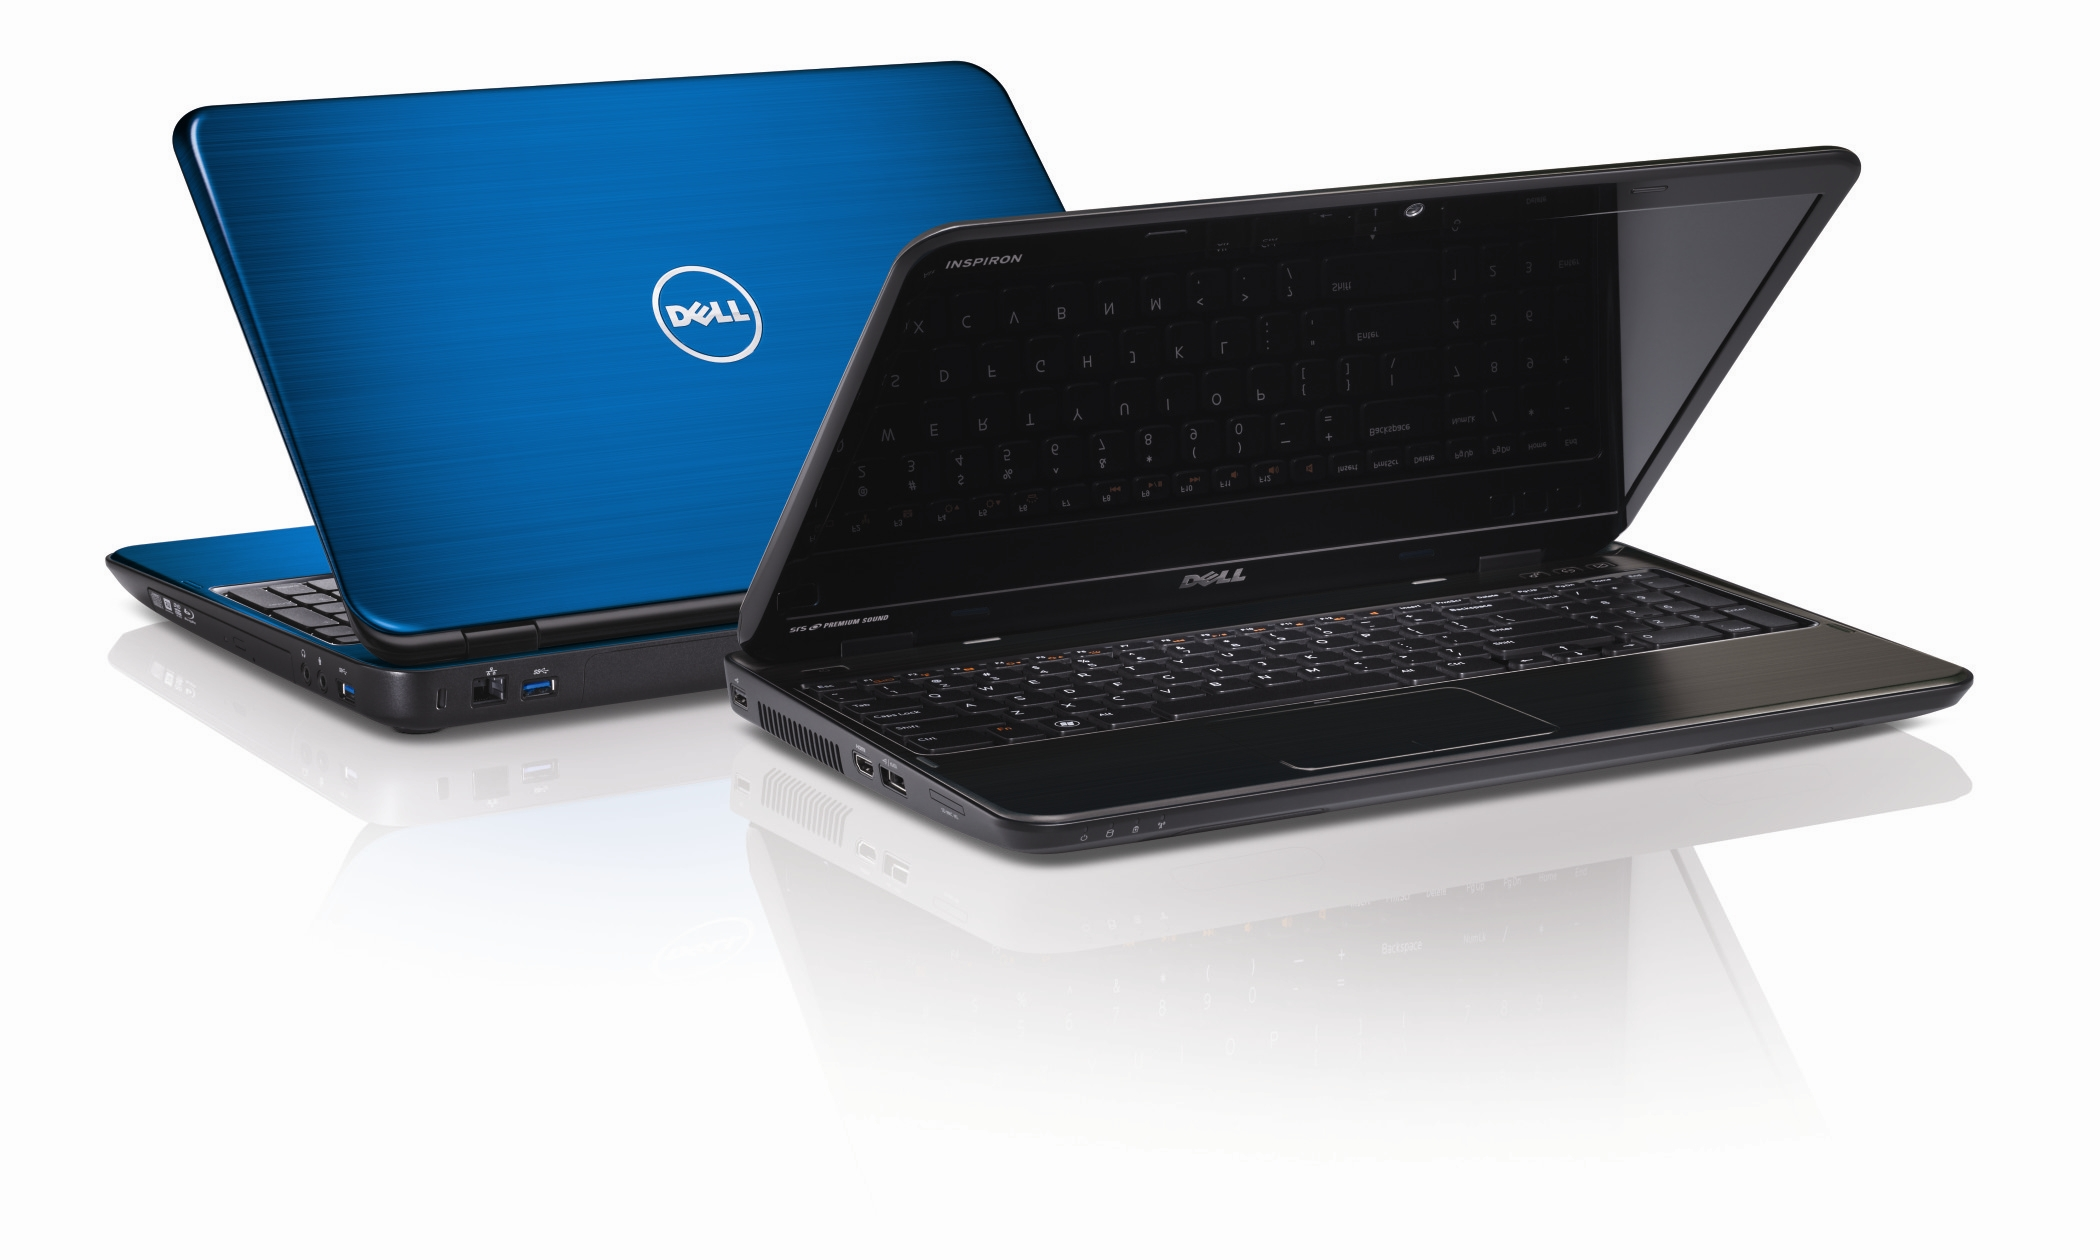 Laptop Dell Inspiron N5110; Core I7 2.2 Ghz; 4 Gb; 500 Gb; Nvidia; Dvdrwbd; 15.6 Inch; Refurbished;